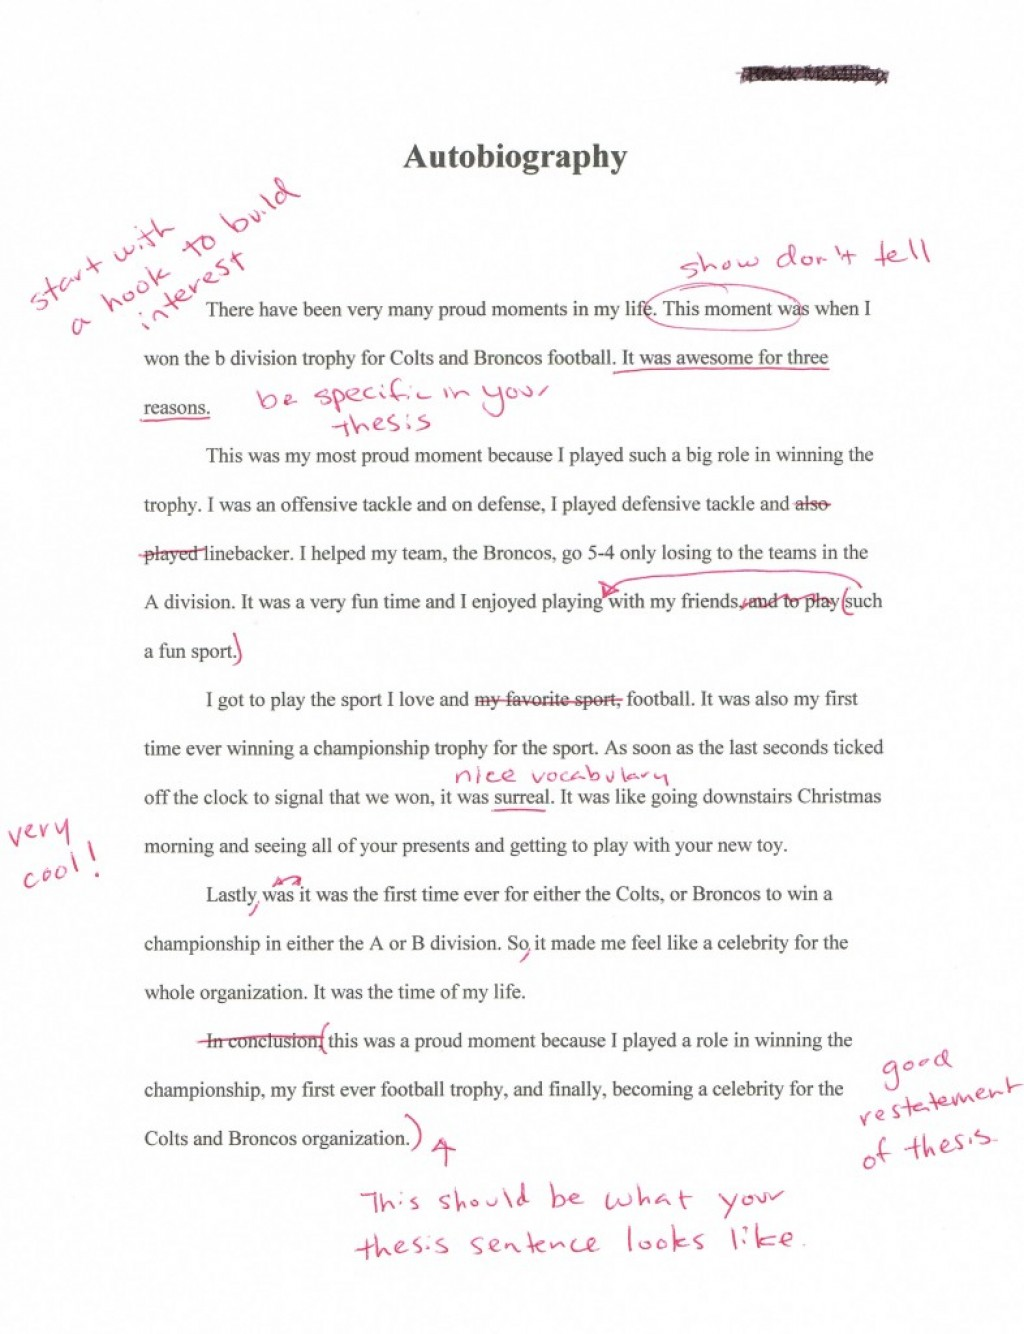 015 Essay Example How To Write Good Biographical Incredible A Bibliography Biography About An Author Pdf Large